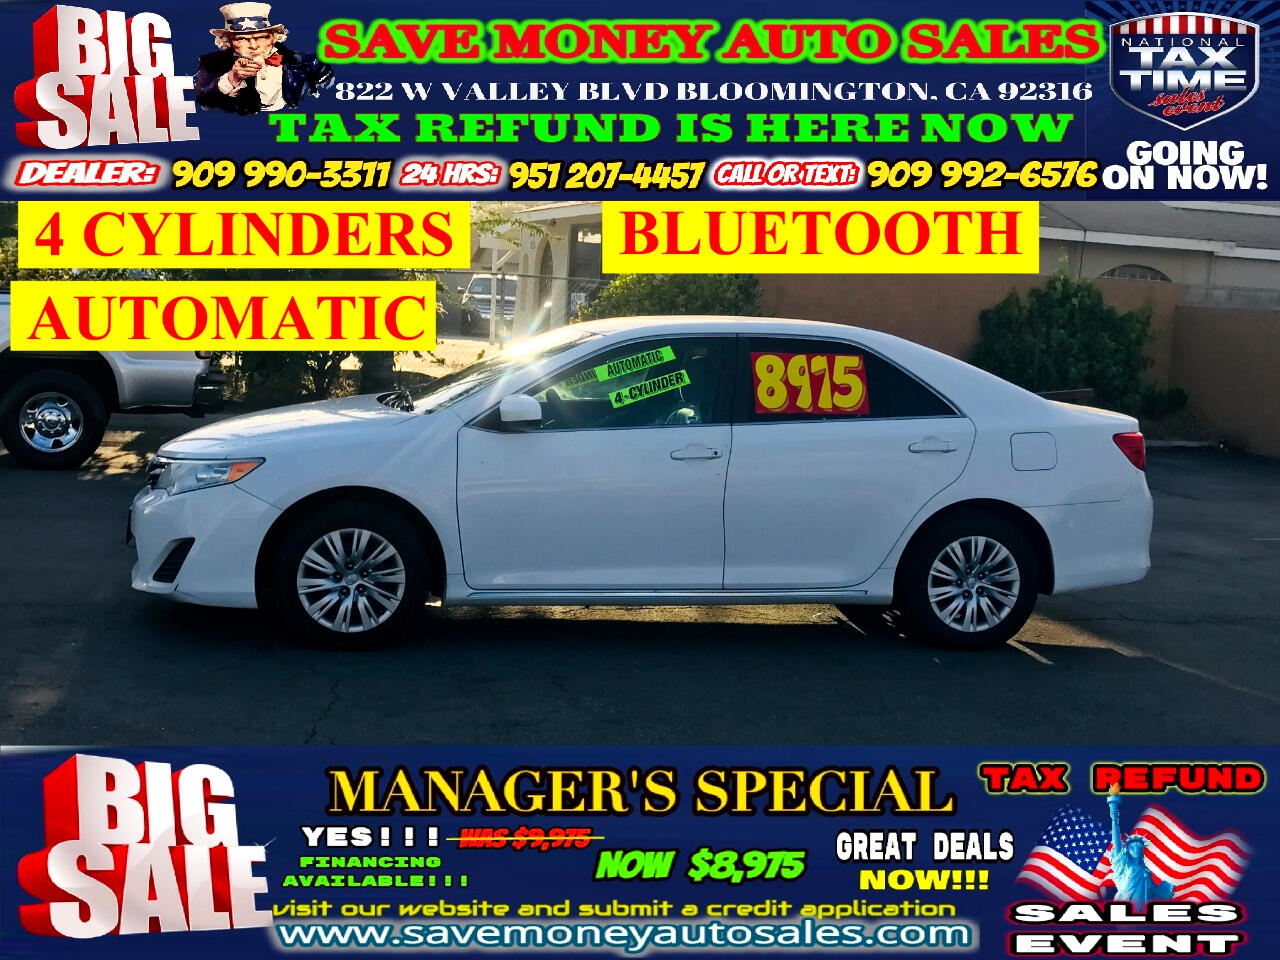 2013 Toyota Camry XLE>>.BLUETOOTH PLUS ONLY 4 CYLINDERS>EXTRA CLEAN!